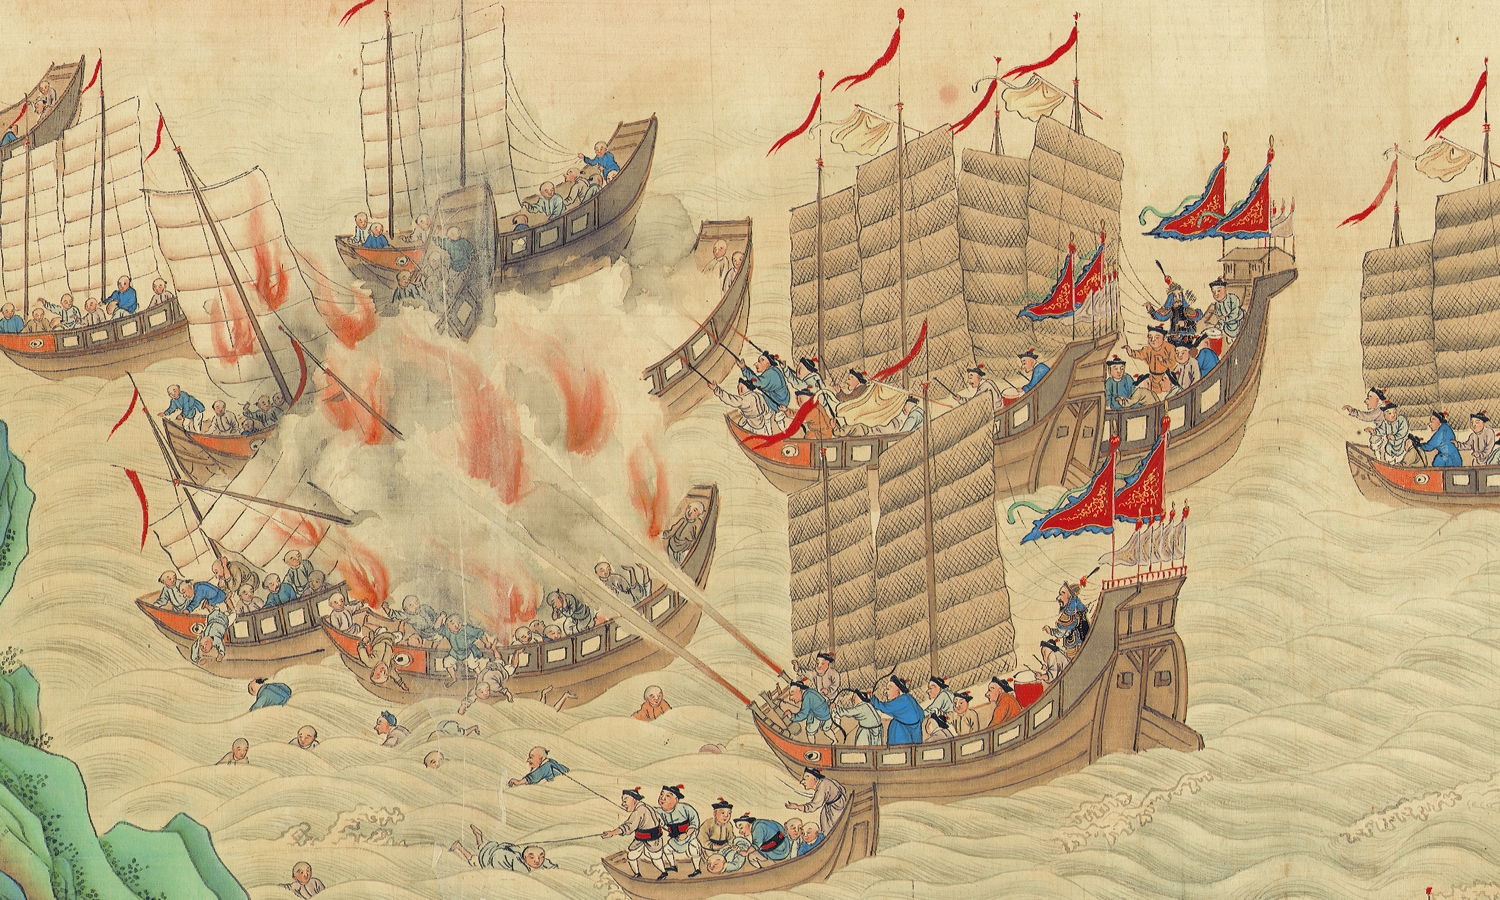 https://upload.wikimedia.org/wikipedia/commons/2/23/Piracy_of_the_South_China_Sea.JPG